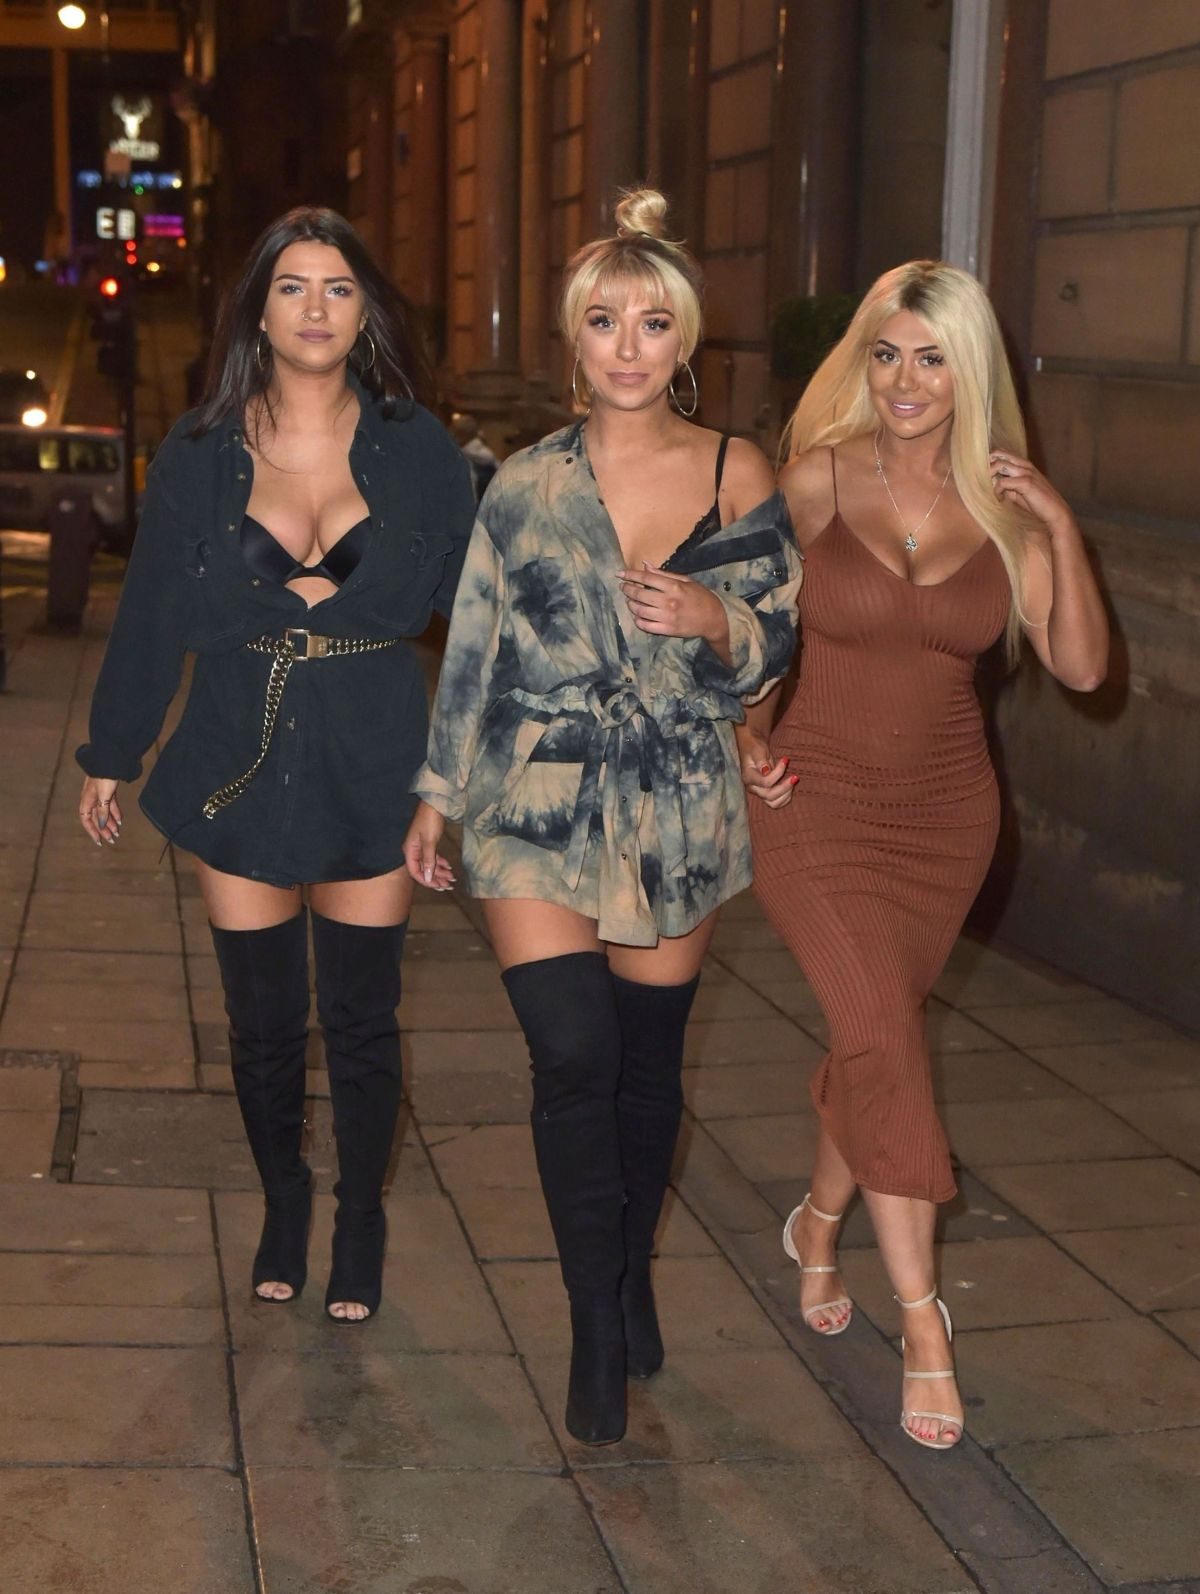 TheFappening Chloe Ferry nude photos 2019